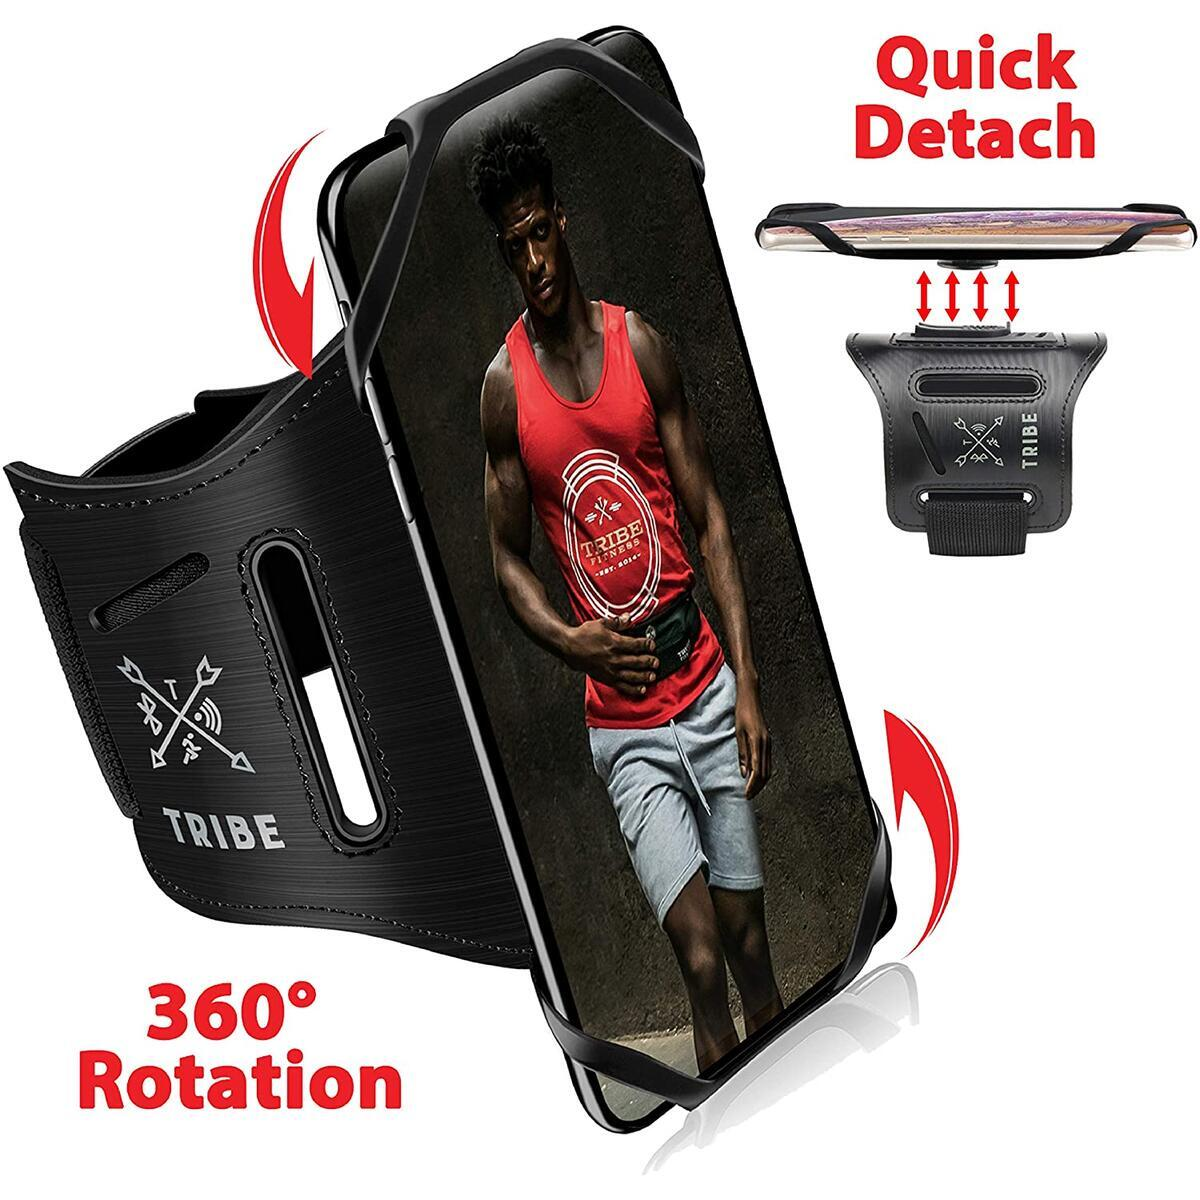 TRIBE Running Phone Armband Holder for iPhone, Galaxy, Workout Arm Band, Women, Men. 360° Rotation & Detachable.